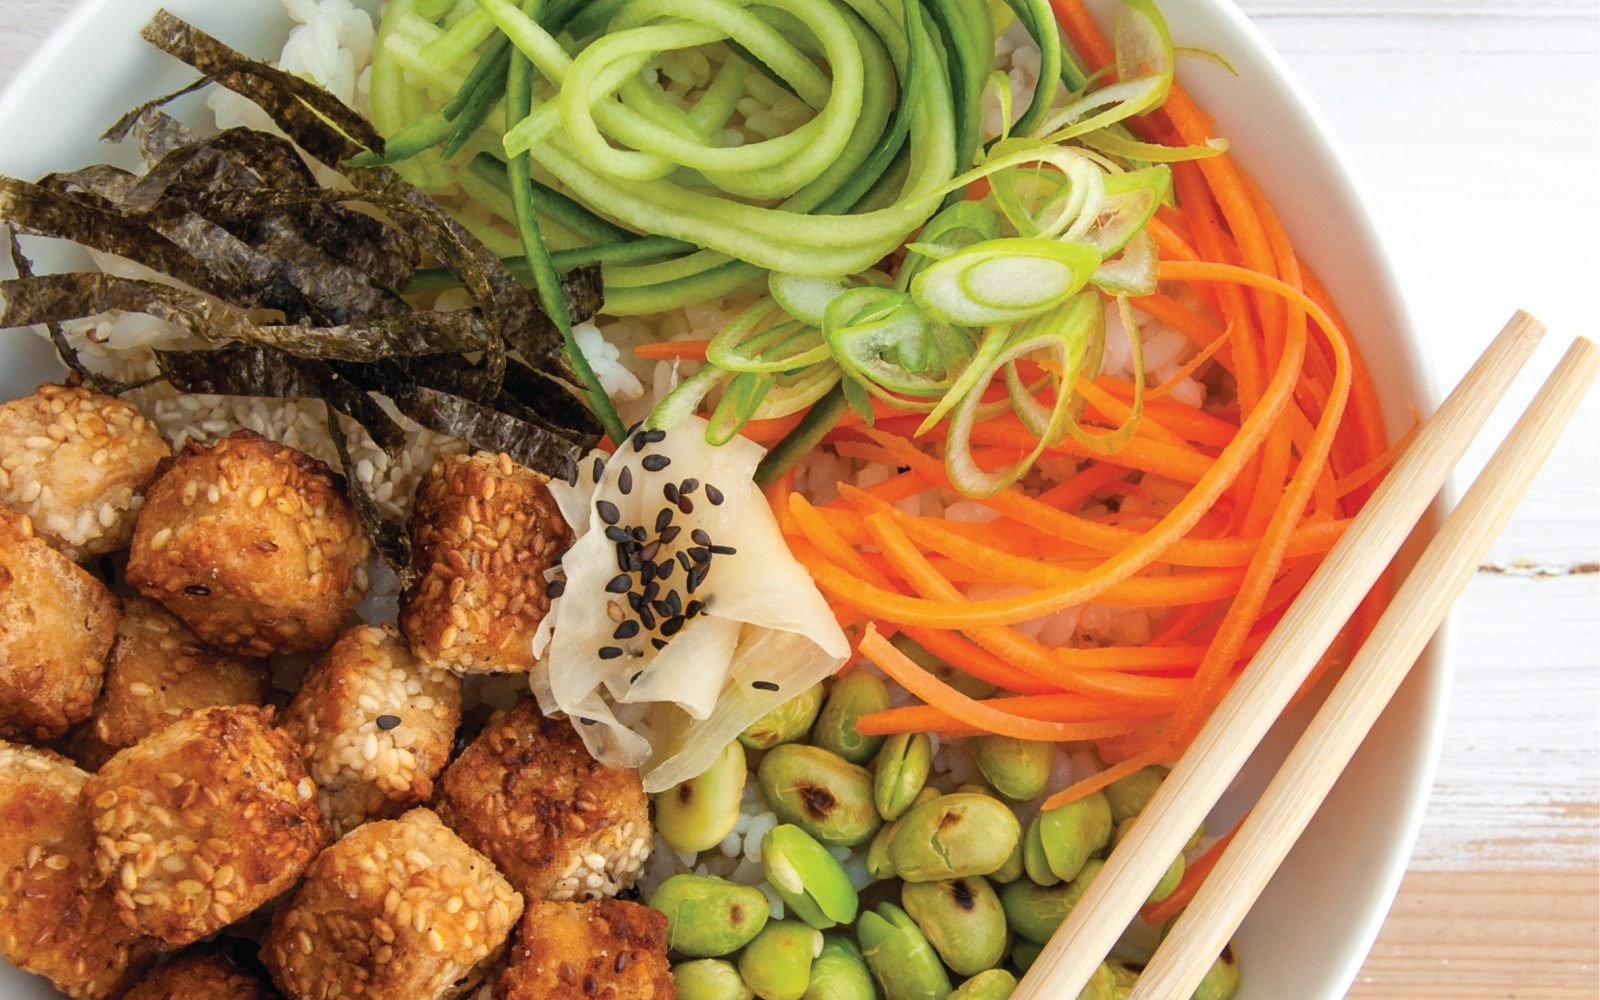 Vegan Sushi Bowl with Sesame-Crusted Tofu